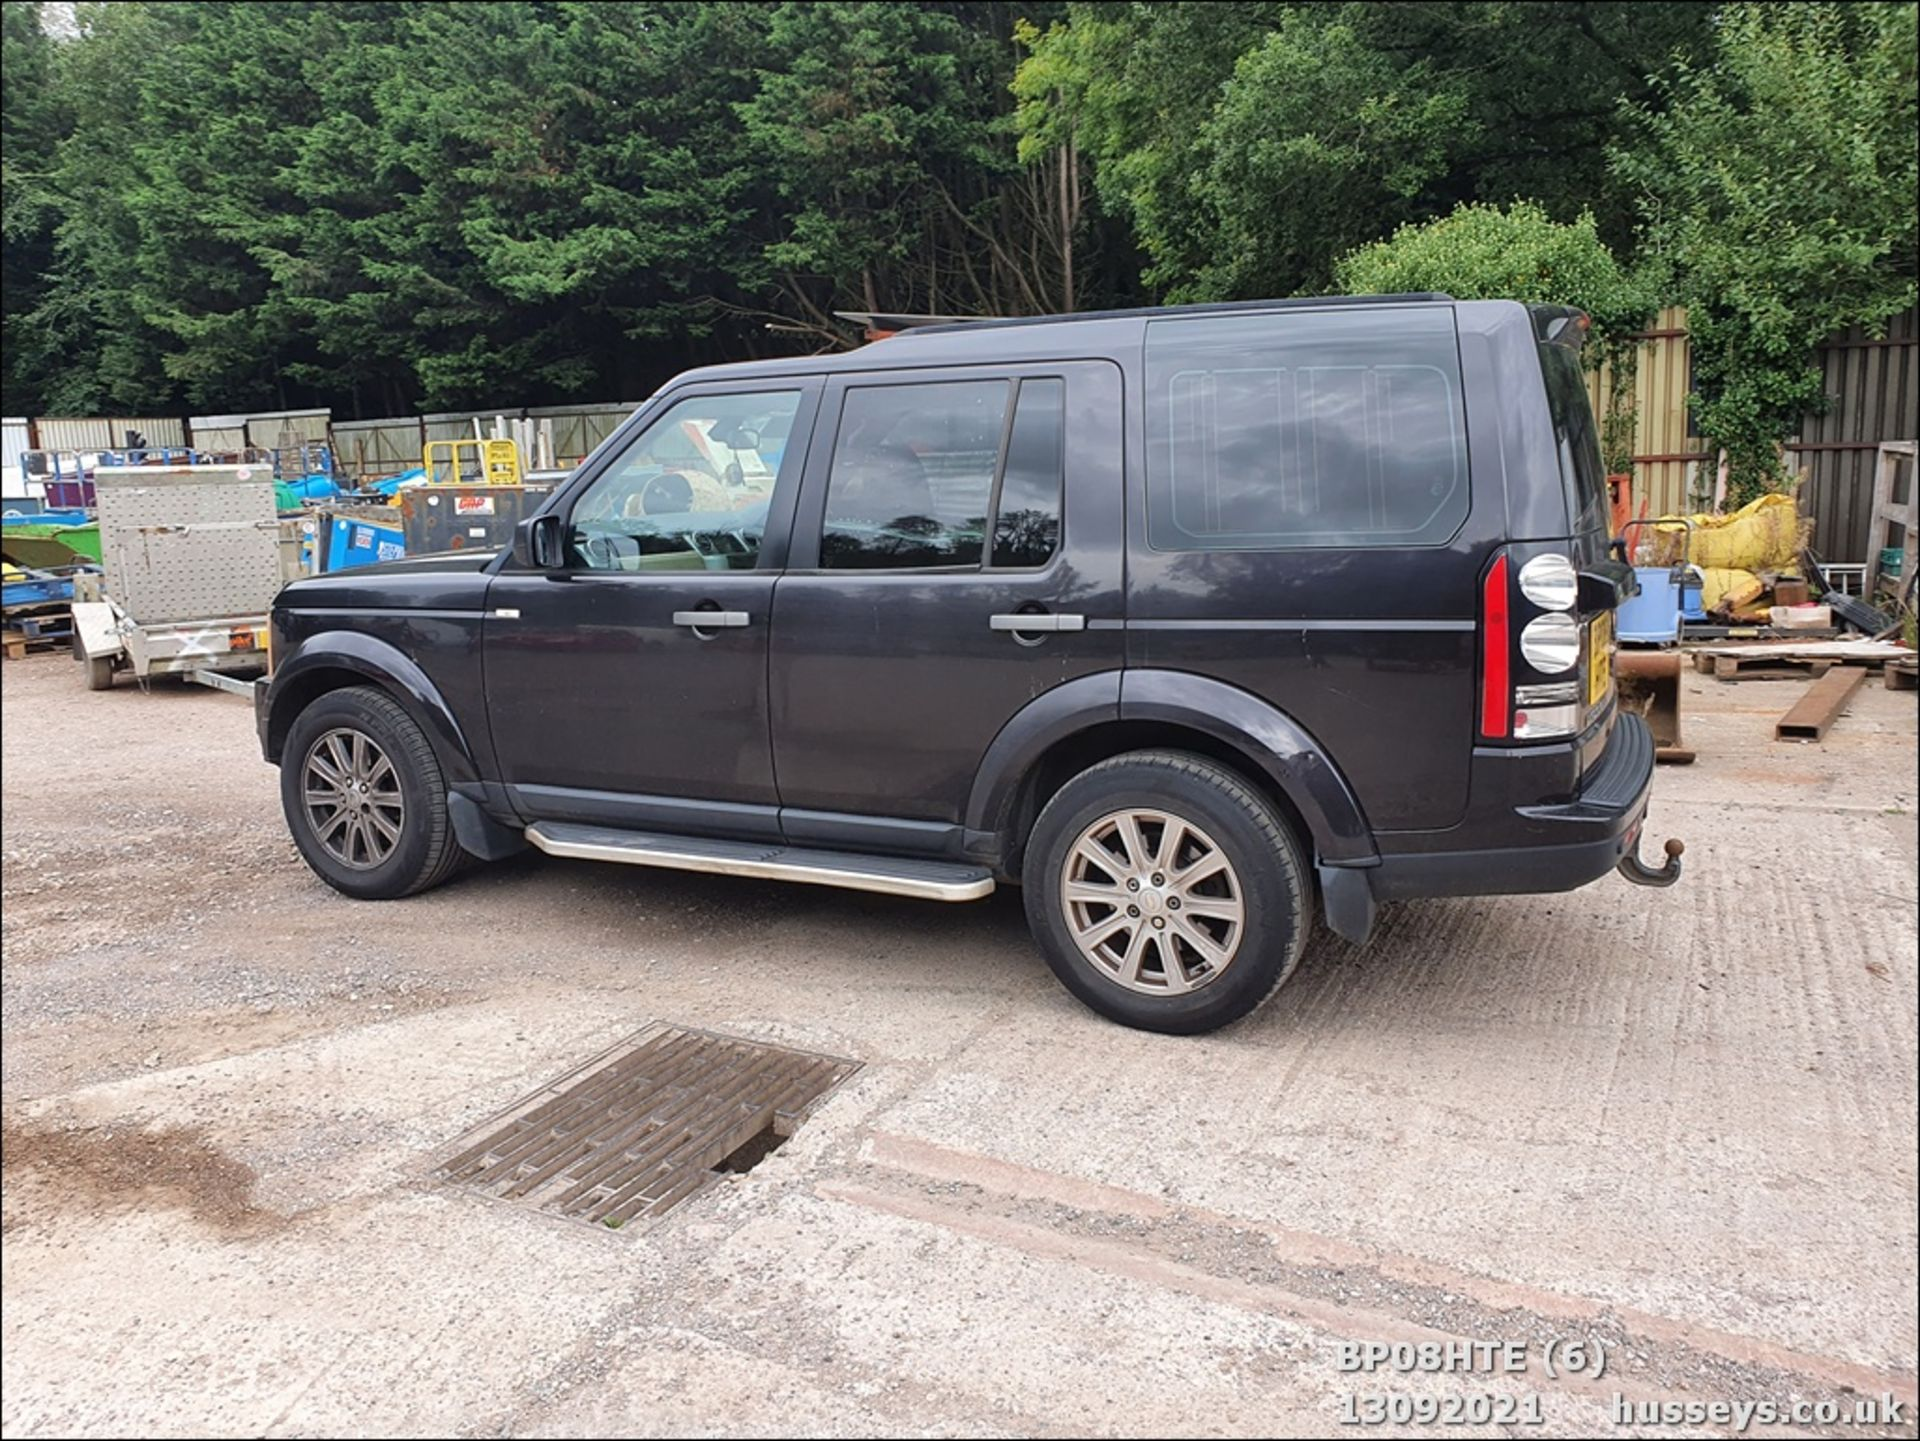 08/08 LAND ROVER DISCOVERY TDV6 SE A - 2720cc 5dr Estate (Brown, 190k) - Image 6 of 18